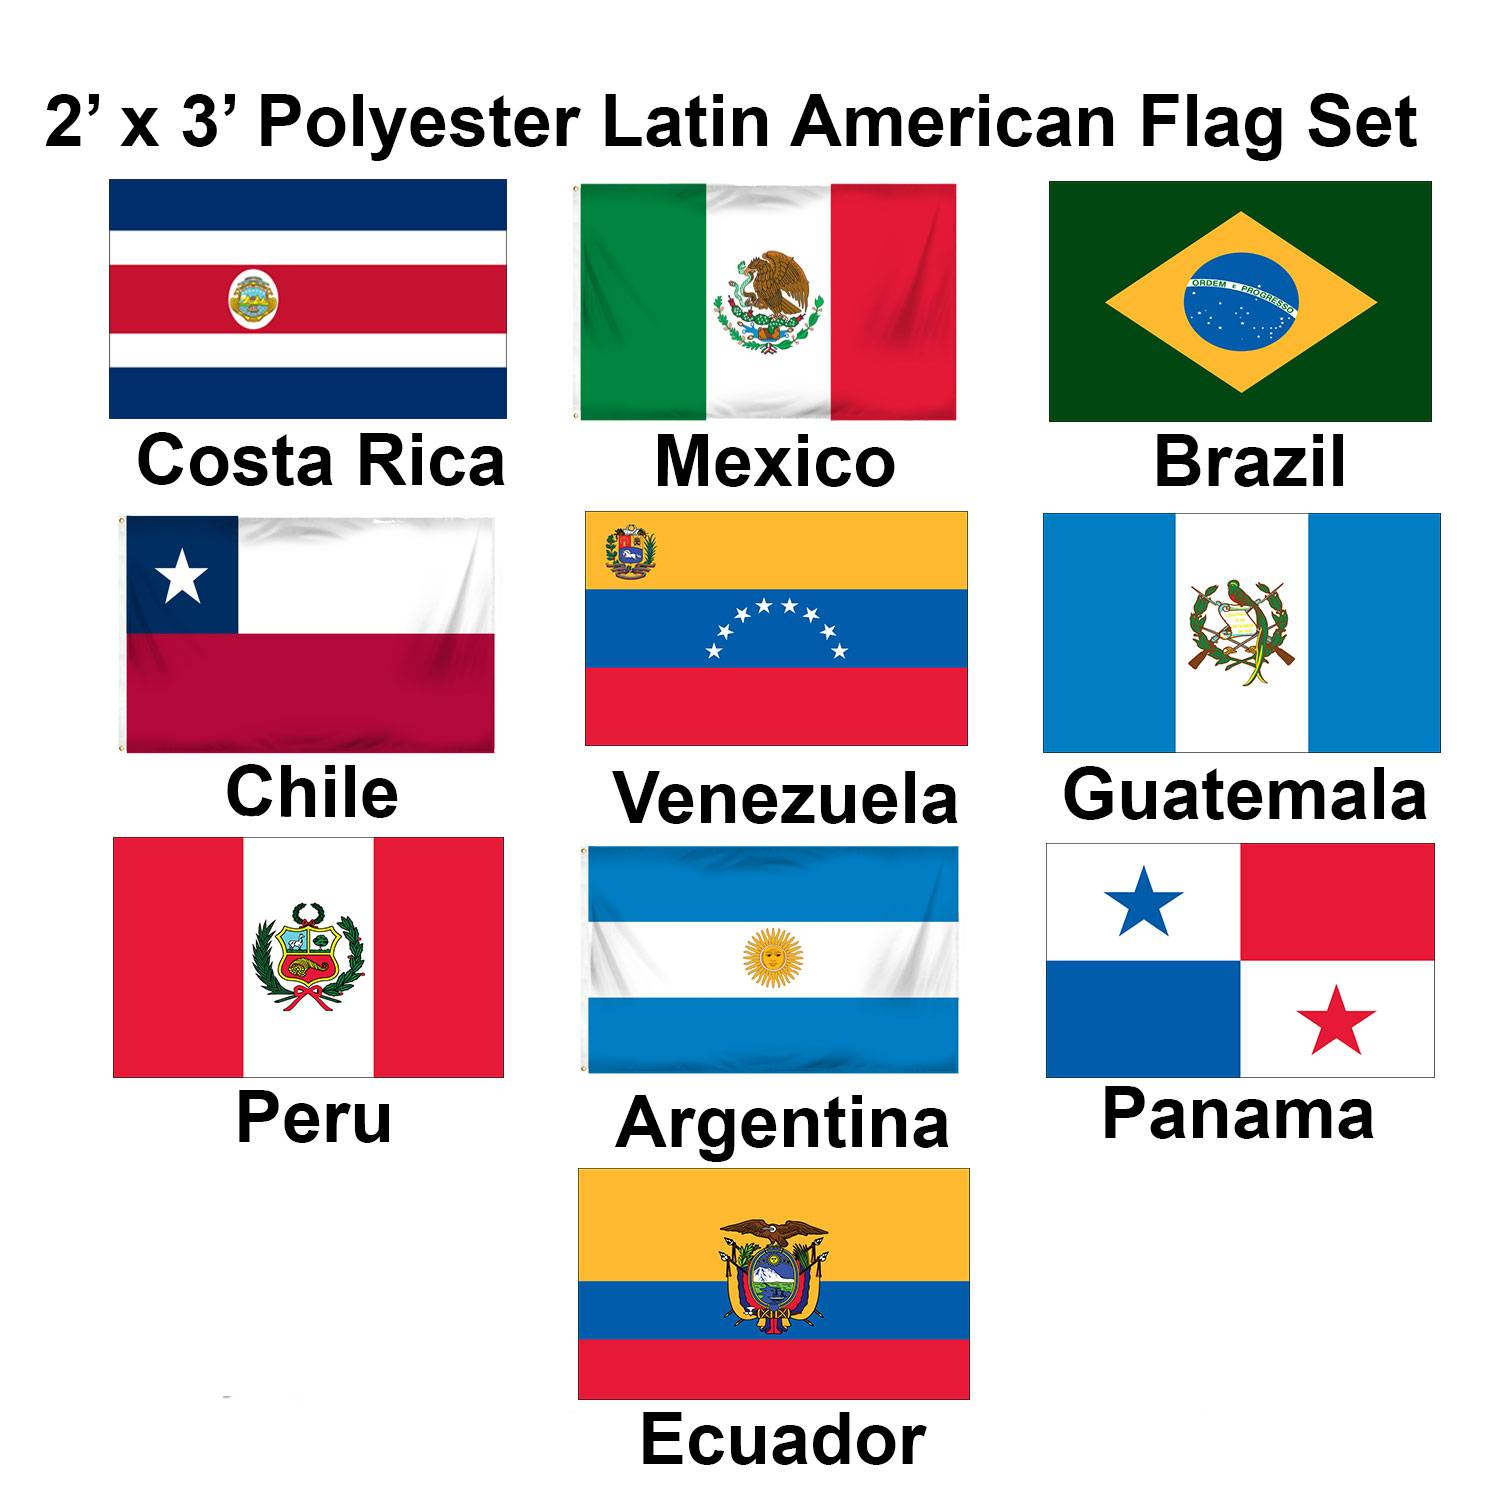 (2x3ft) Set of 10 Latin American Flags - Set 1